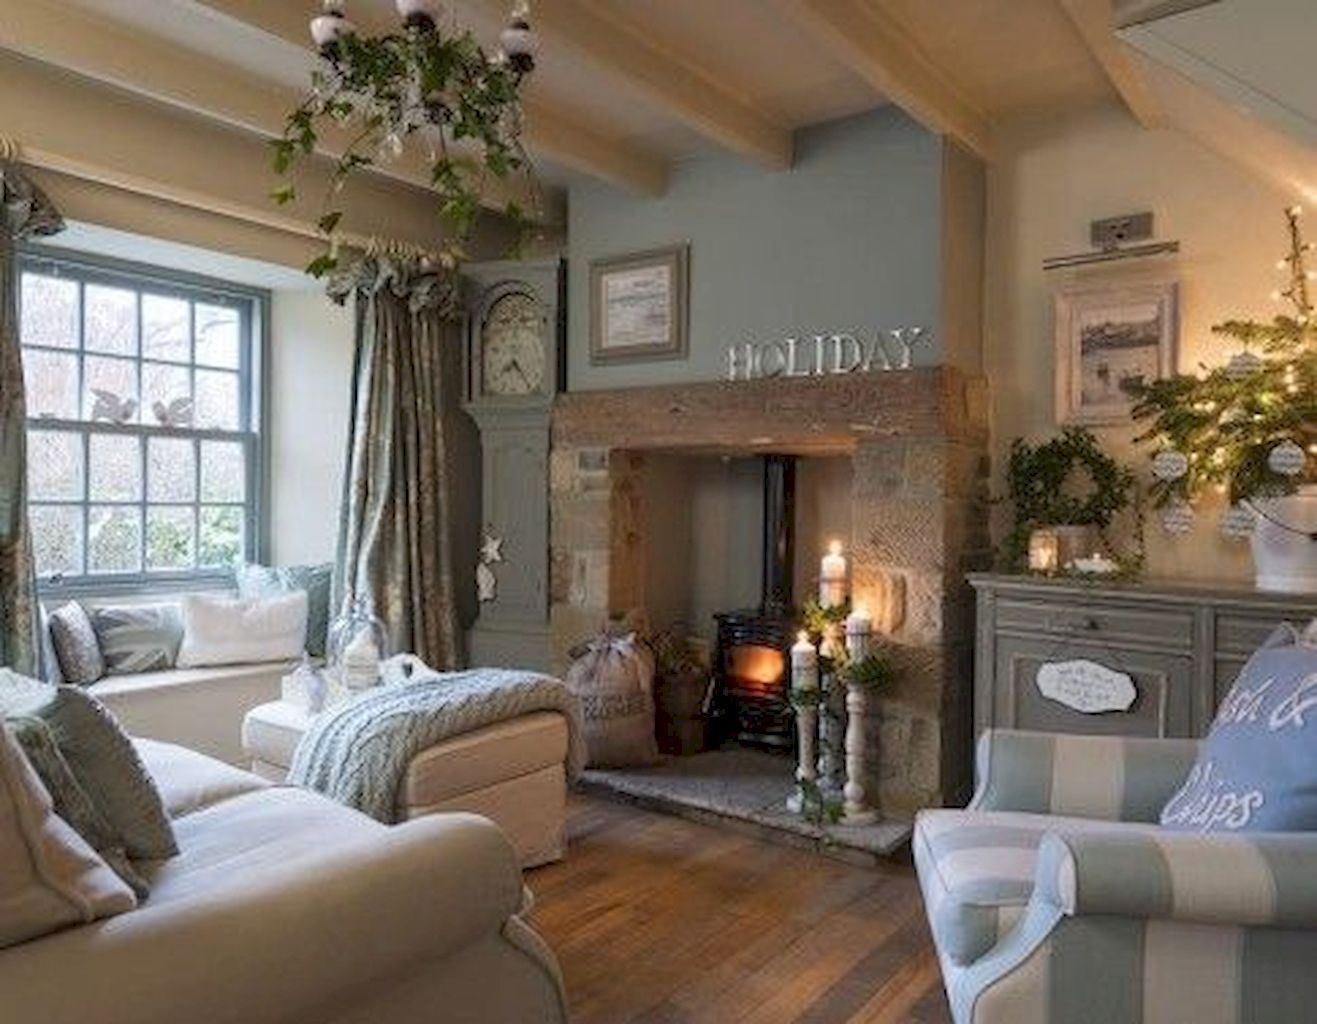 Nice Find The Look You Re Going For Cozy Living Room Decor Https Hometoz Com Find The Look Yo House And Home Magazine Cottage Living Rooms 25 Beautiful Homes Decorating cottage living rooms